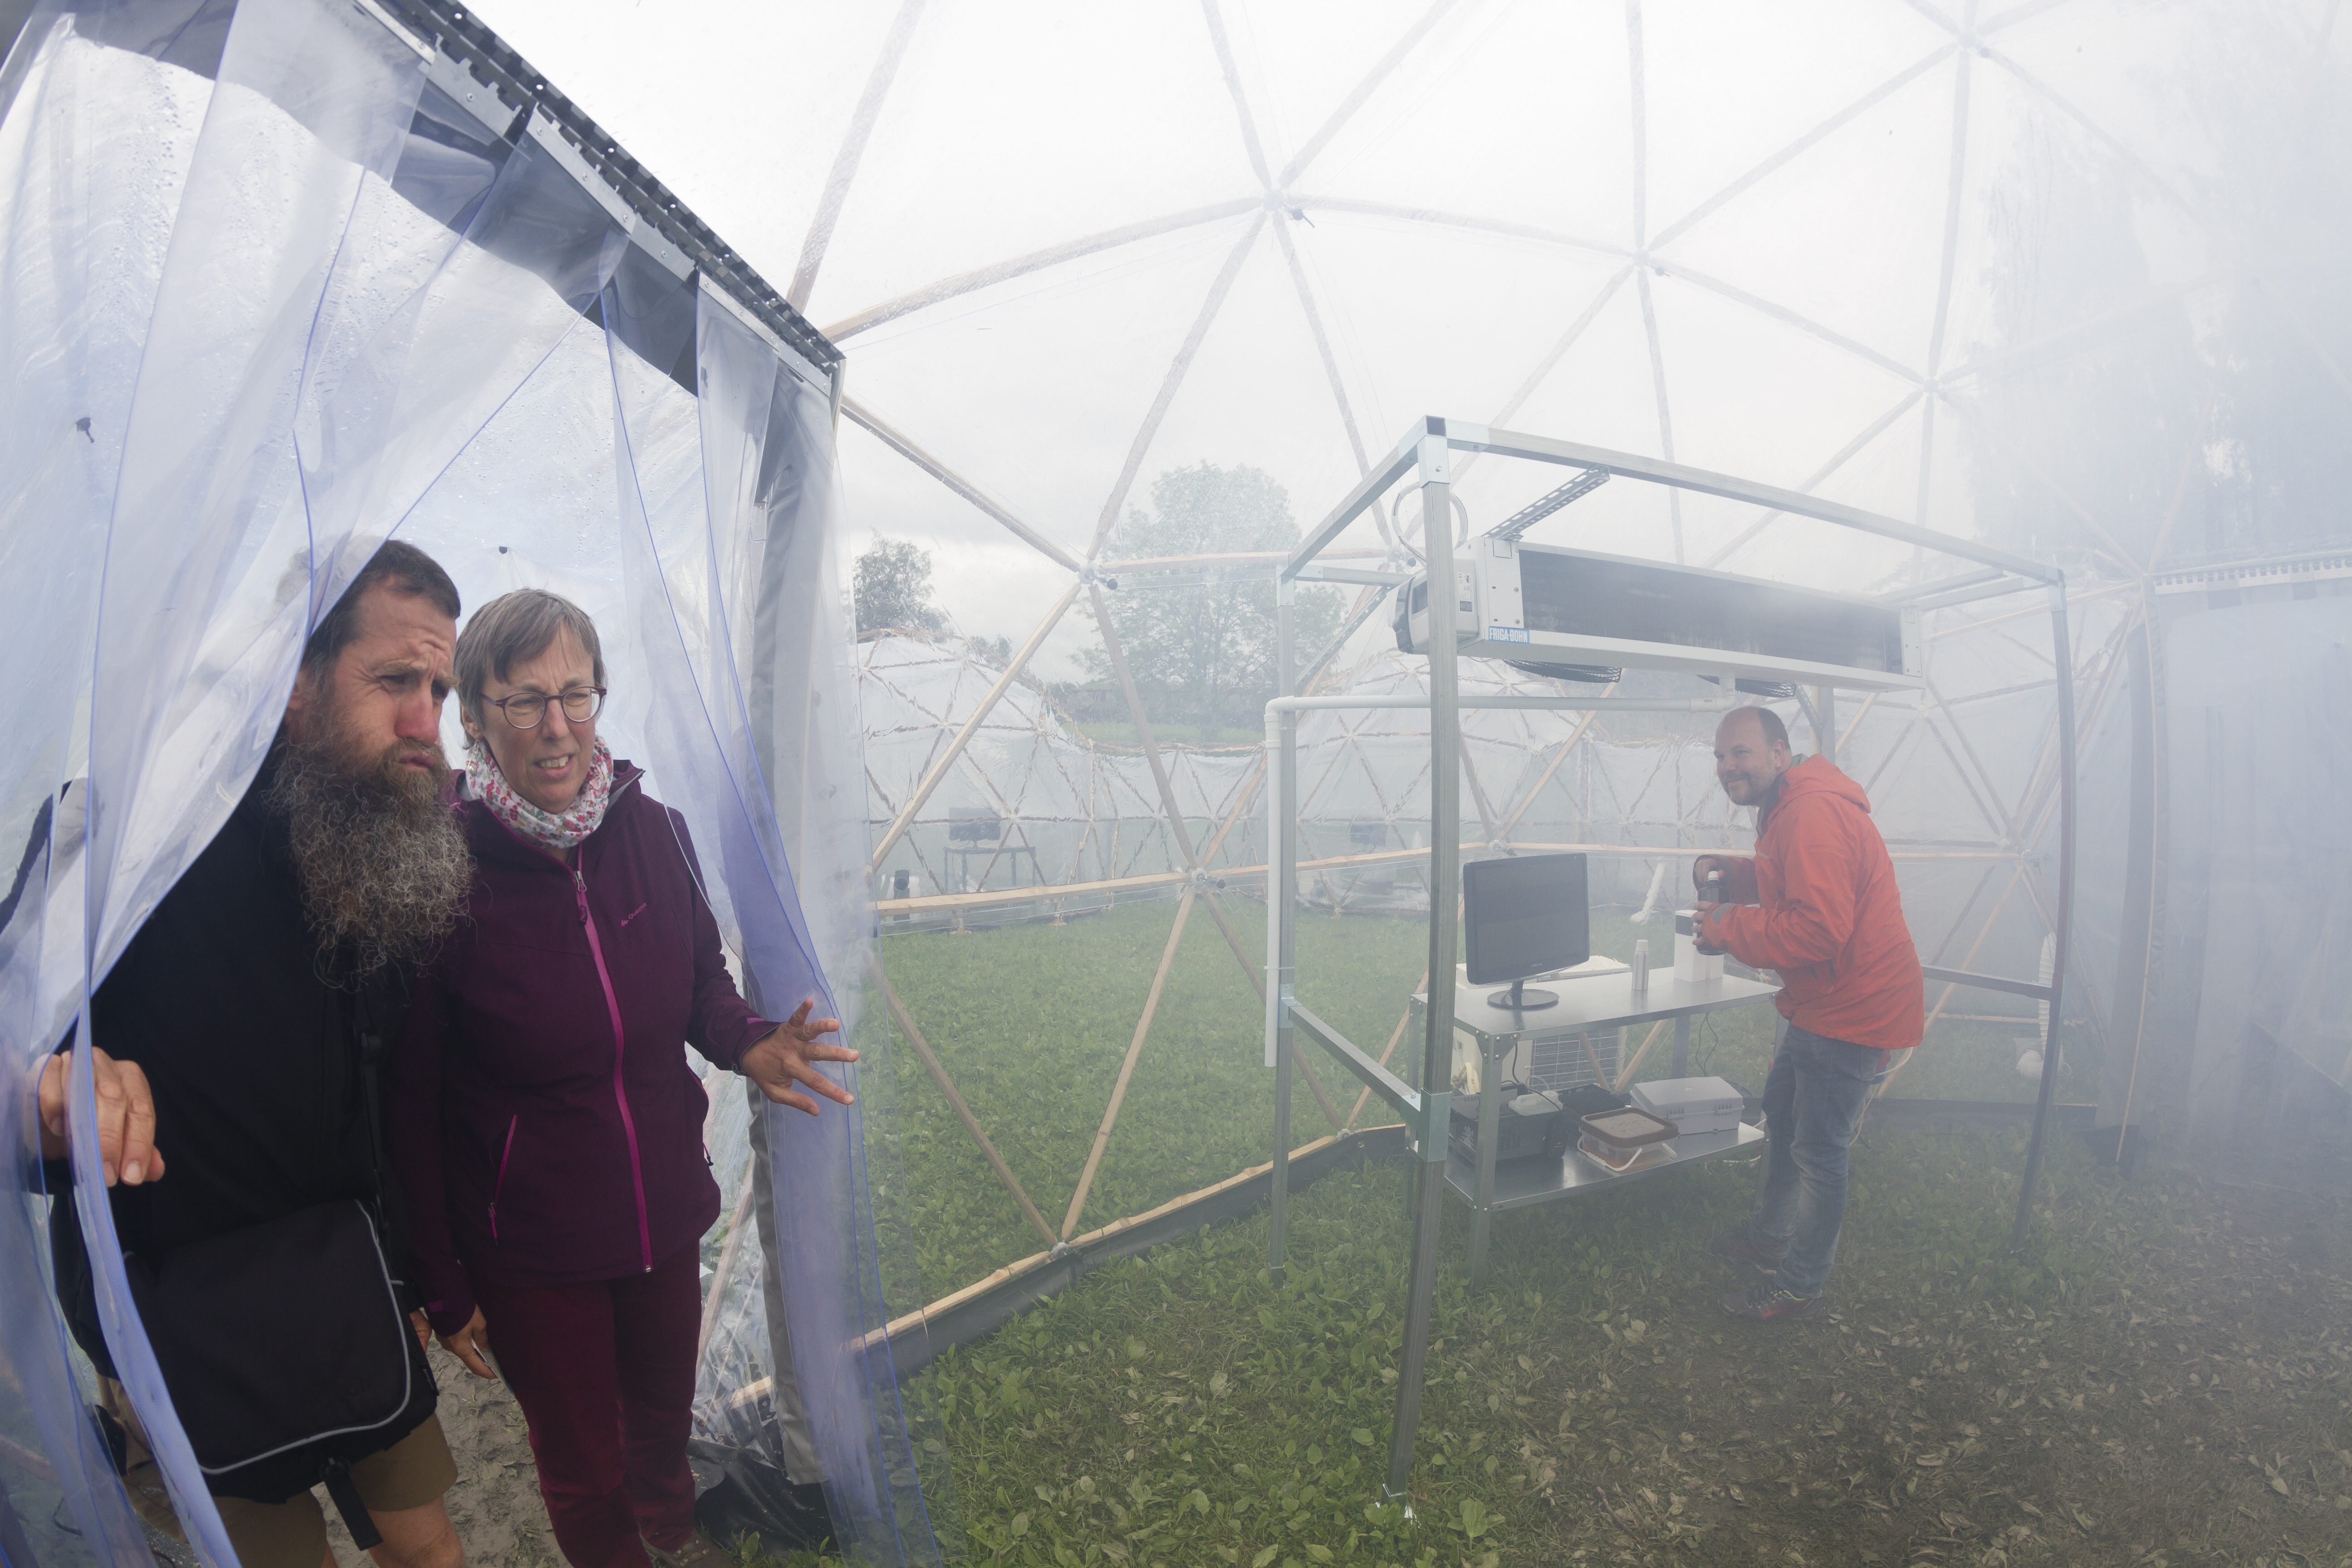 Trondheim 18.06.2017 : The science festival Starmus IV at NTNU, Trondheim, Norway. The Pollution Pods are six pods connected by hallways; each holding the atmosphere of one of the world's six most polluted cities. Hugo Verdoot and Annelies Michiels from Belgium enter as Christian Klöckner mix the medicin. Photo: Thor Nielsen / NTNU